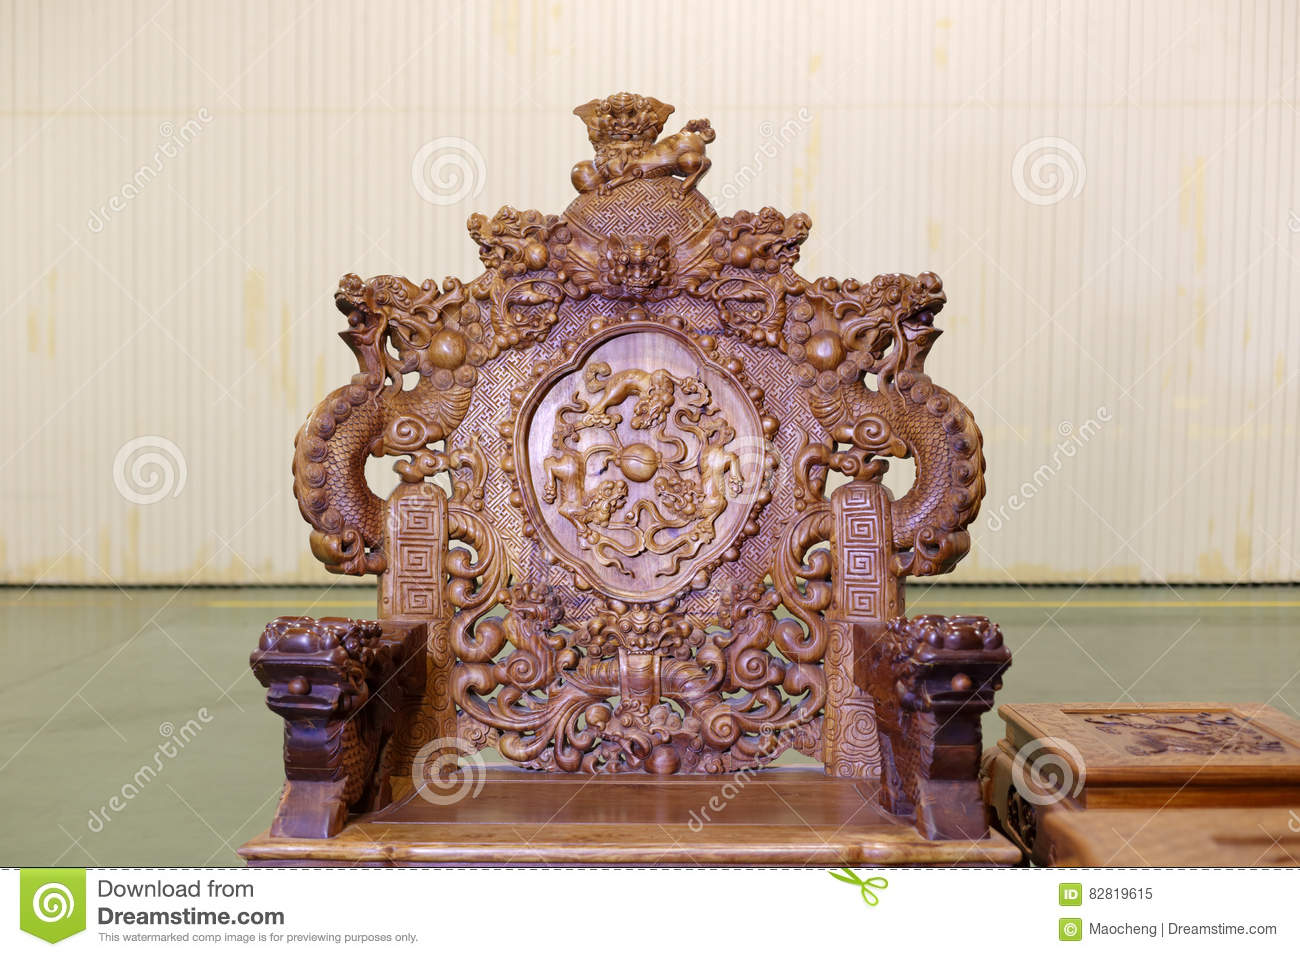 Dragon Chair Chinese Dragon Chair Stock Image Image Of Elegant Classic 82819615